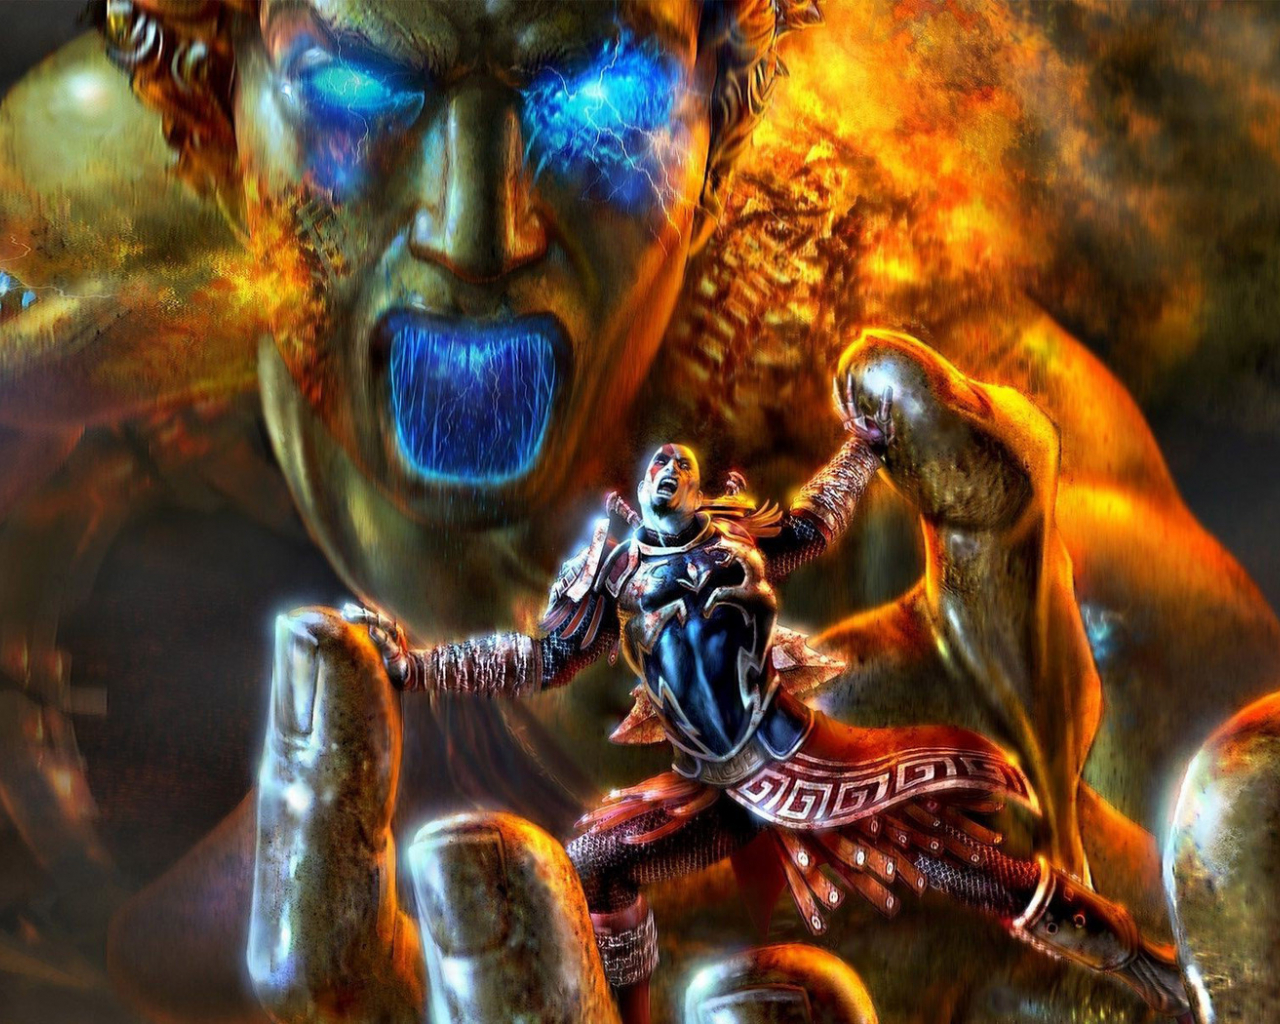 Free Download Kratos God Of War Wallpaper Game Wallpapers 12357